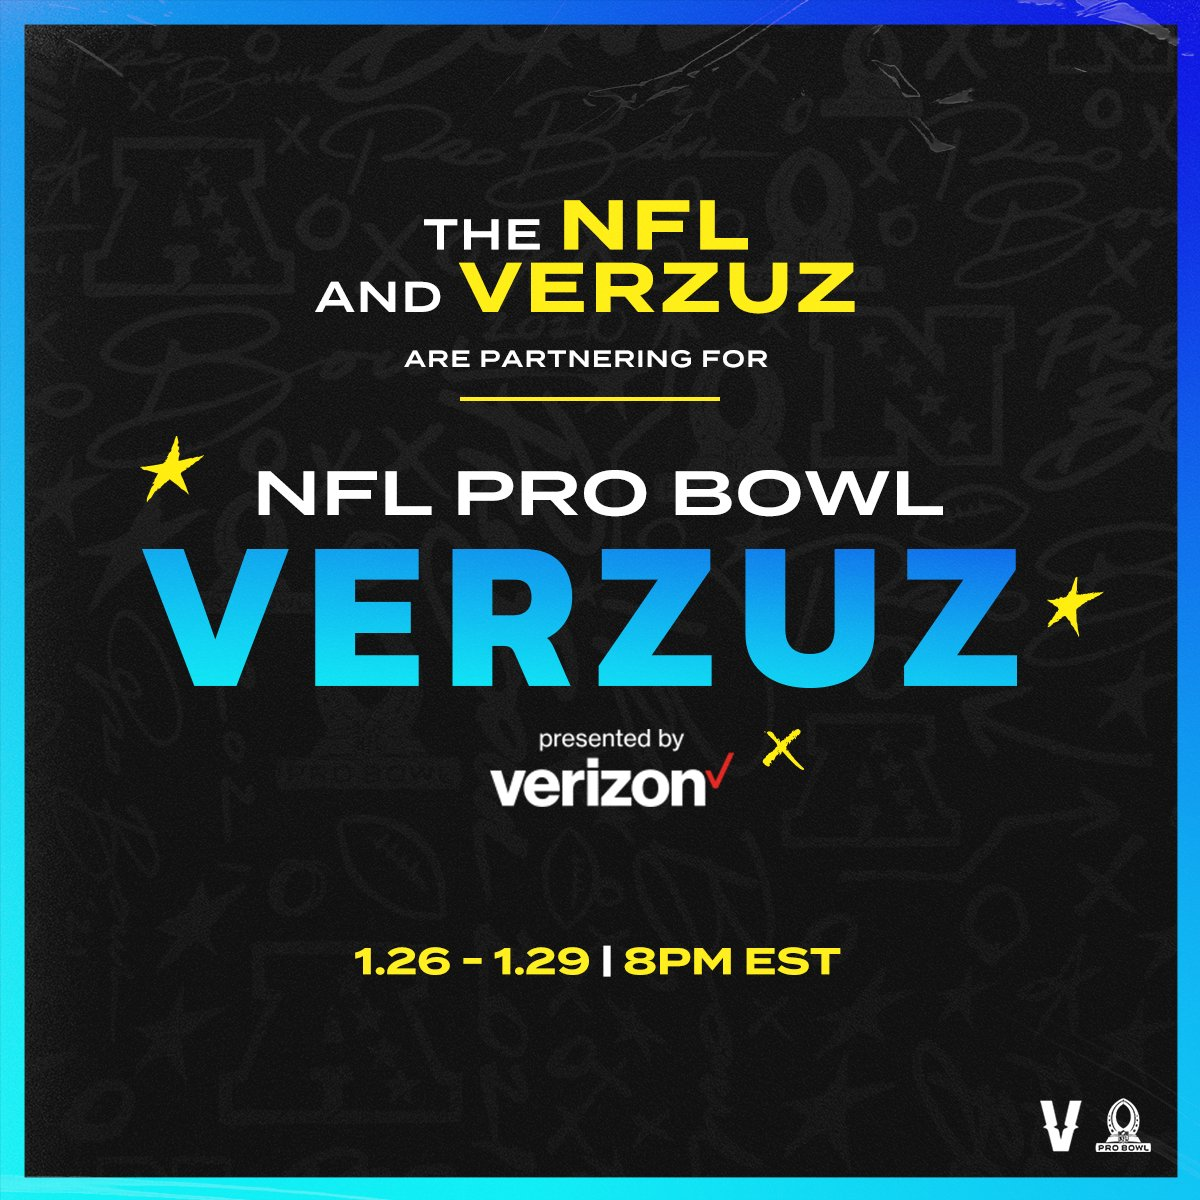 2021 Pro Bowl 🤝 @verzuzonline   From Jan. 26 - Jan. 29, the most dynamic NFL stars face off LIVE in the ultimate highlight competition, showcasing their best on and off-field moments.   Which Pro Bowl players do you want to see go head to head?